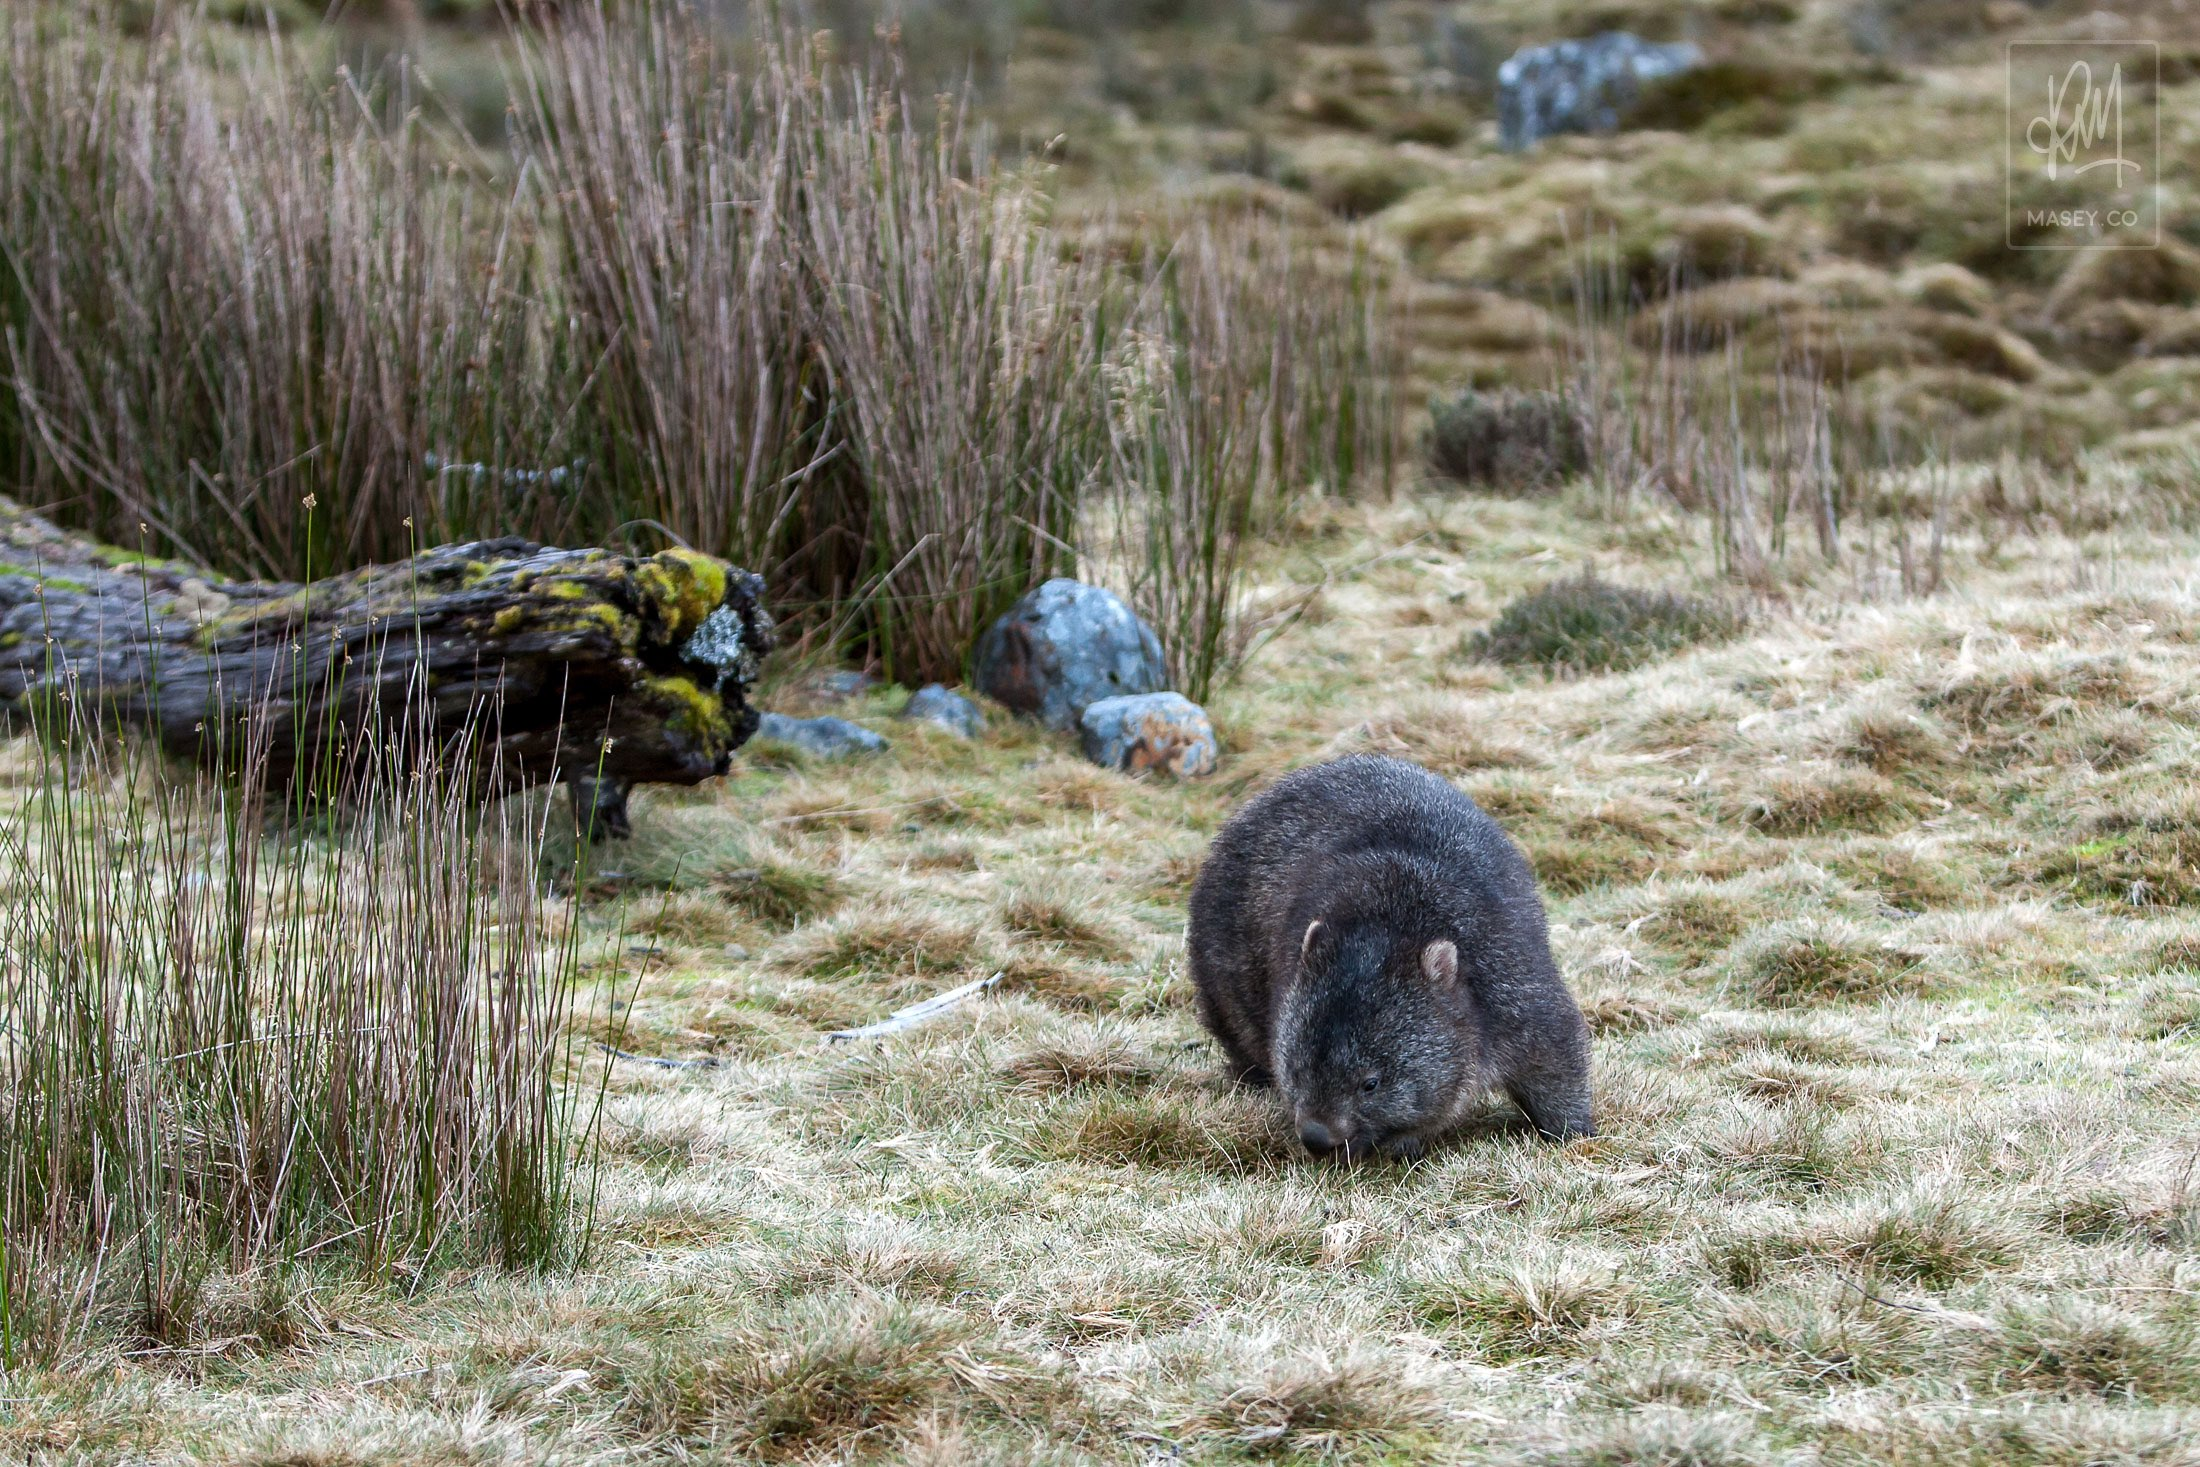 Just a wombat wombling along...